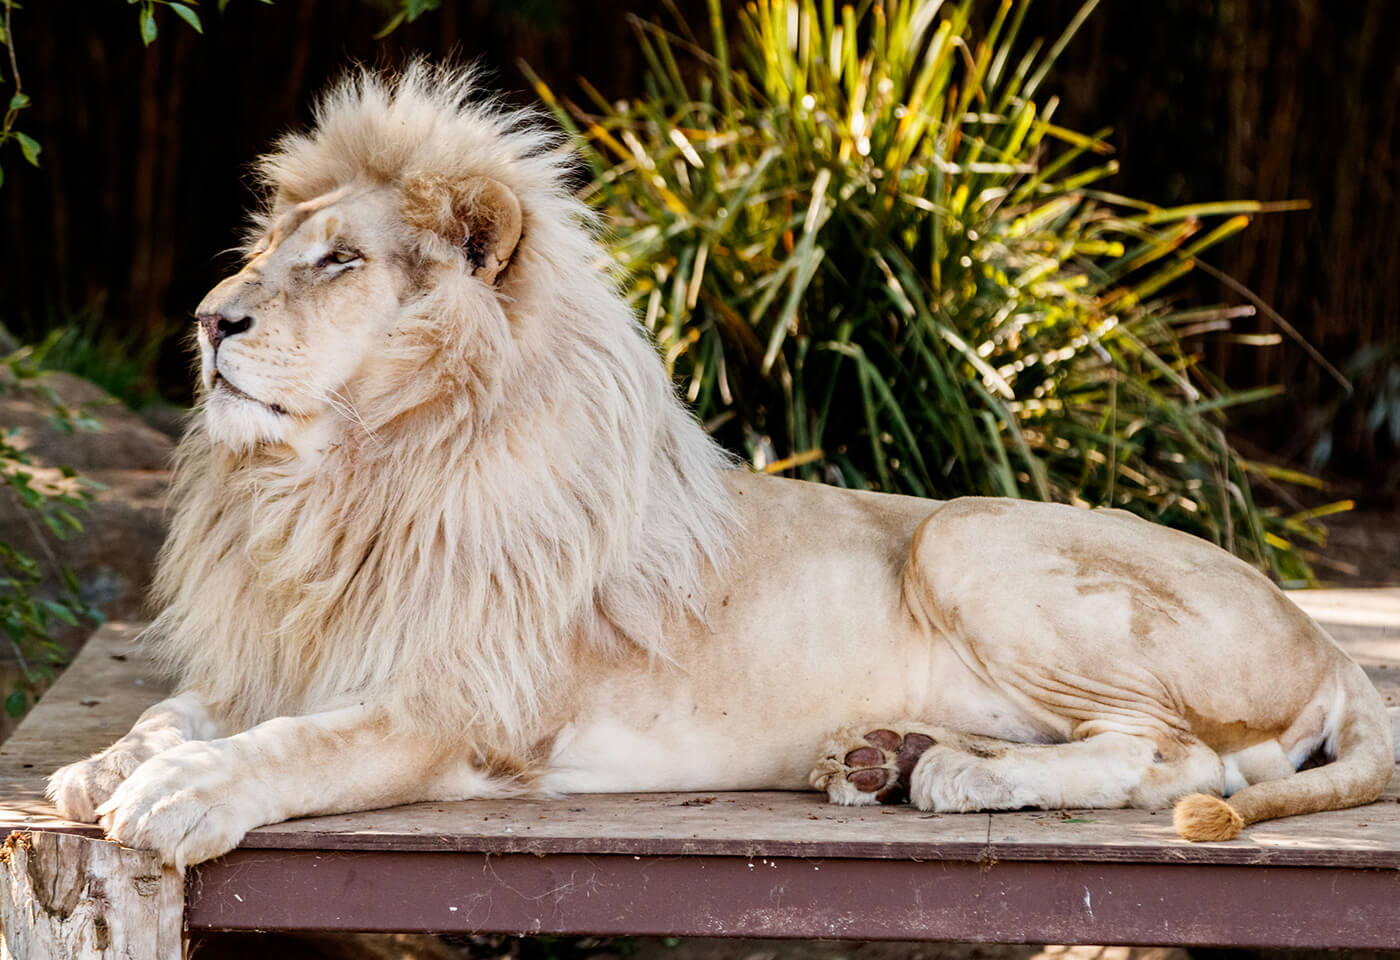 Lion in zoo